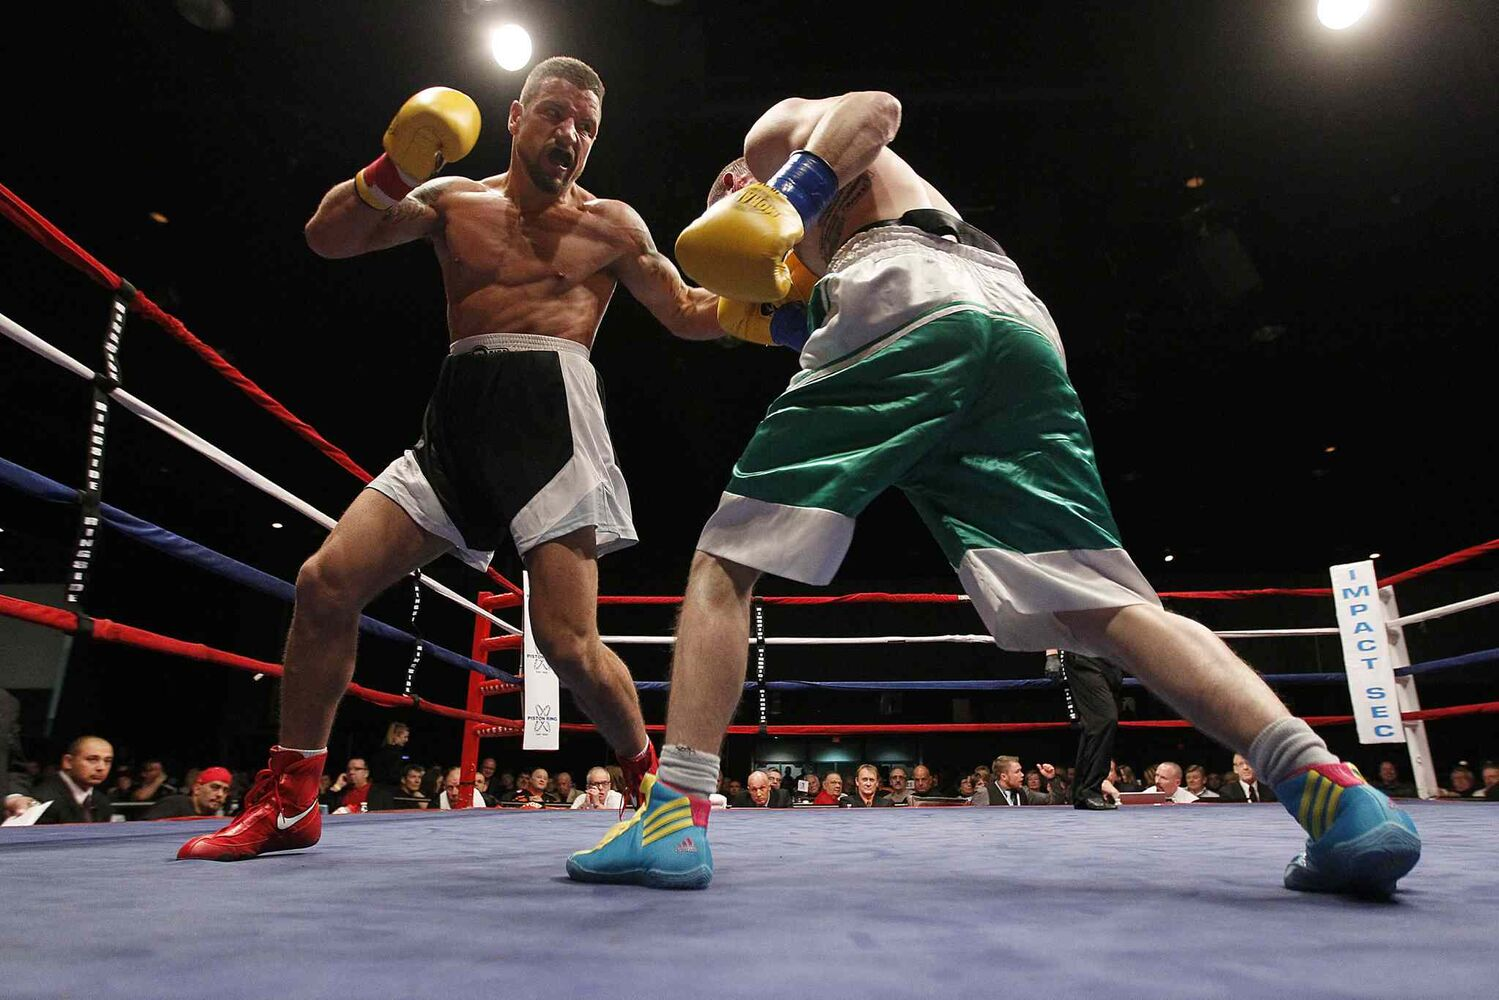 Brad Elsliger (left) hits Paul Bdzel in the midsection. (John Woods / Winnipeg Free Press)